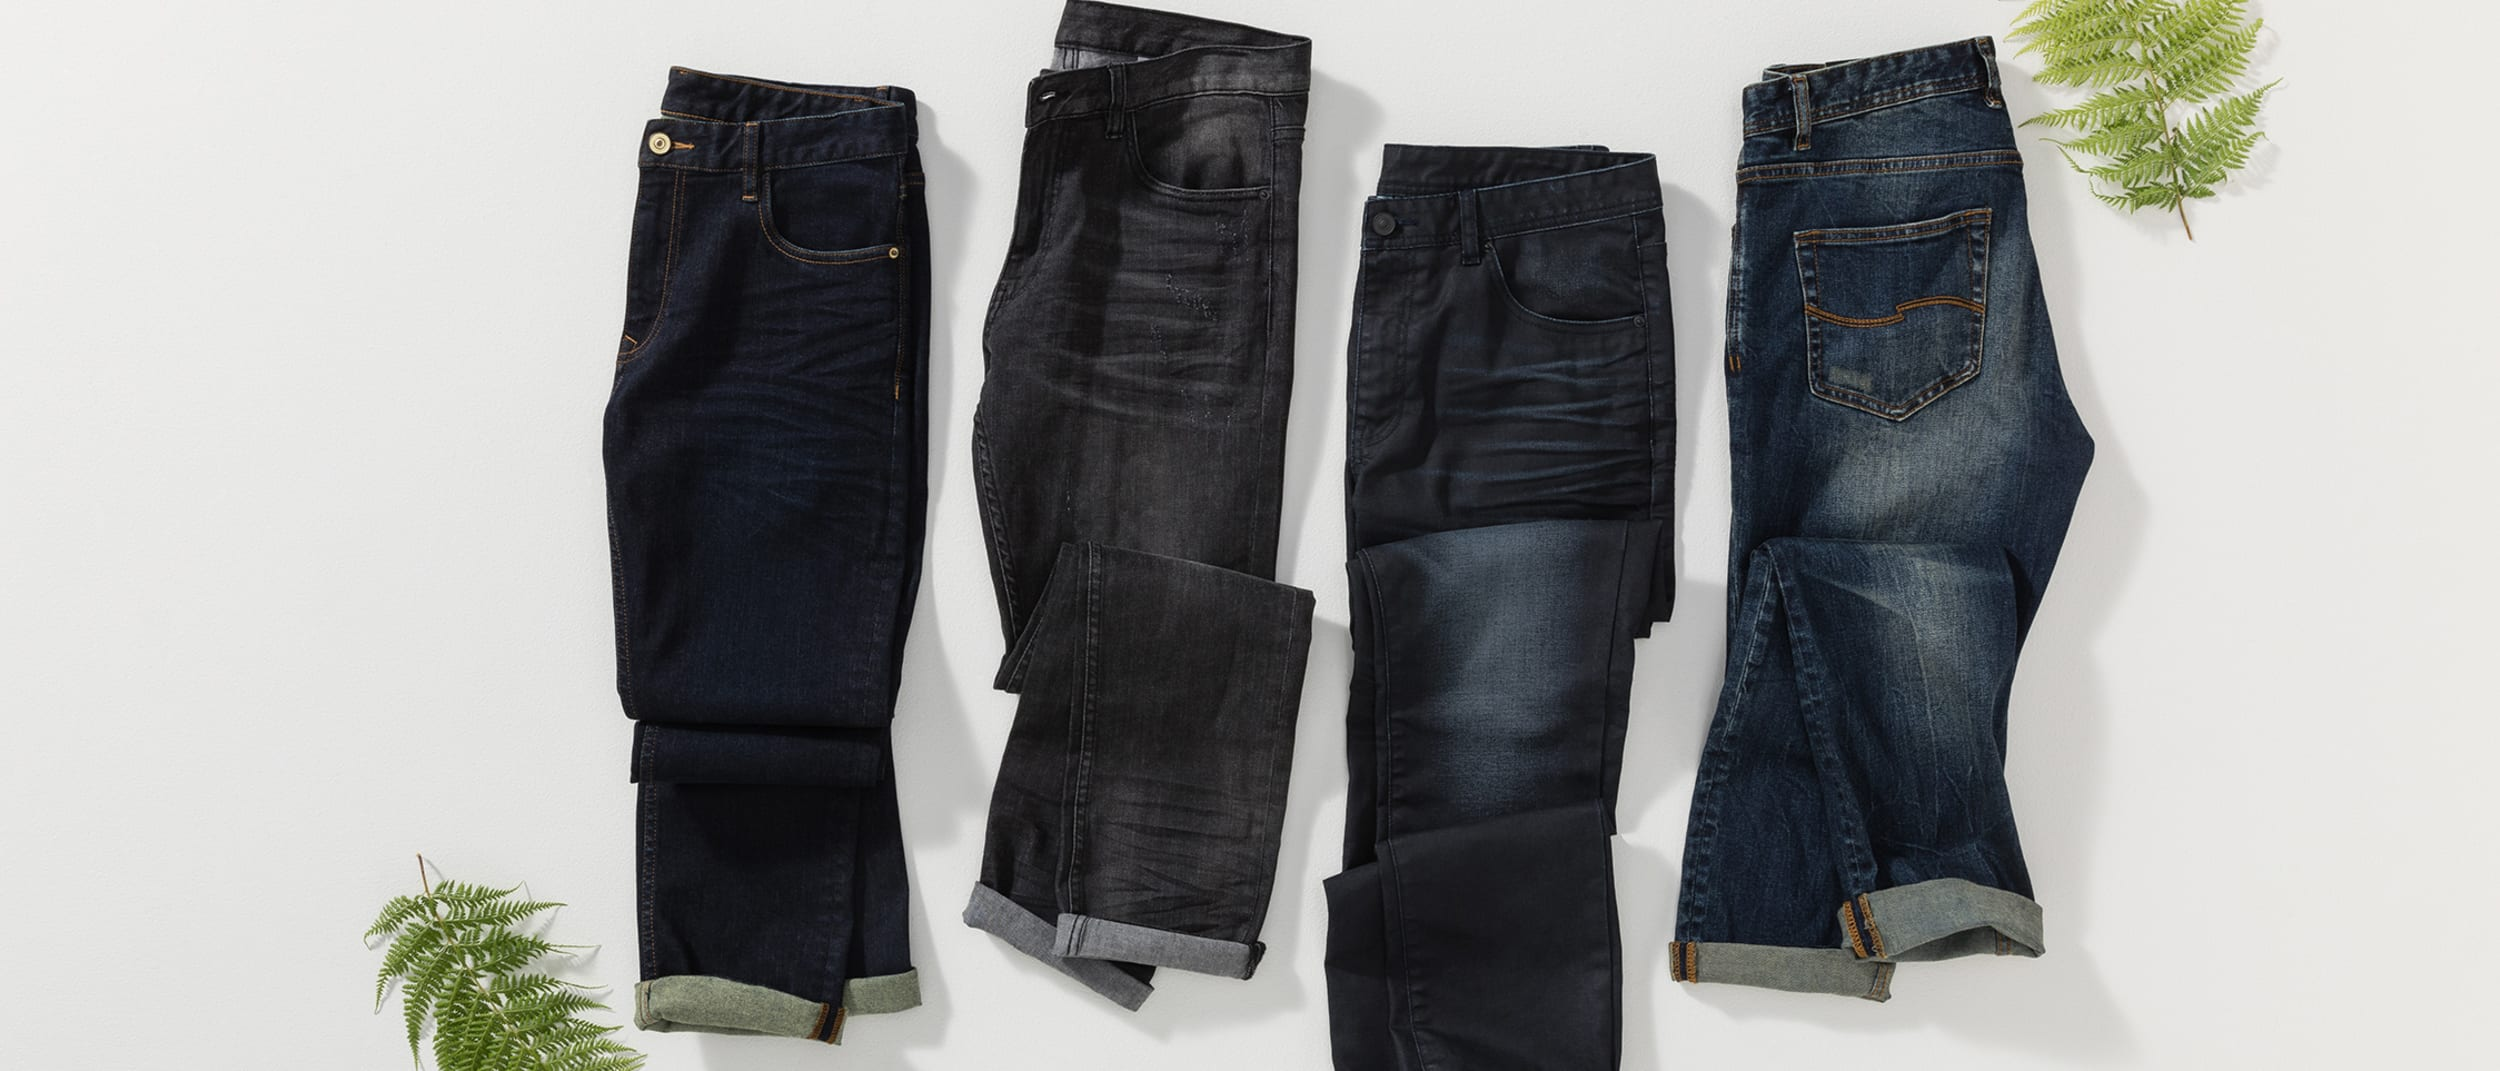 Tarocash: 30% off full price denim